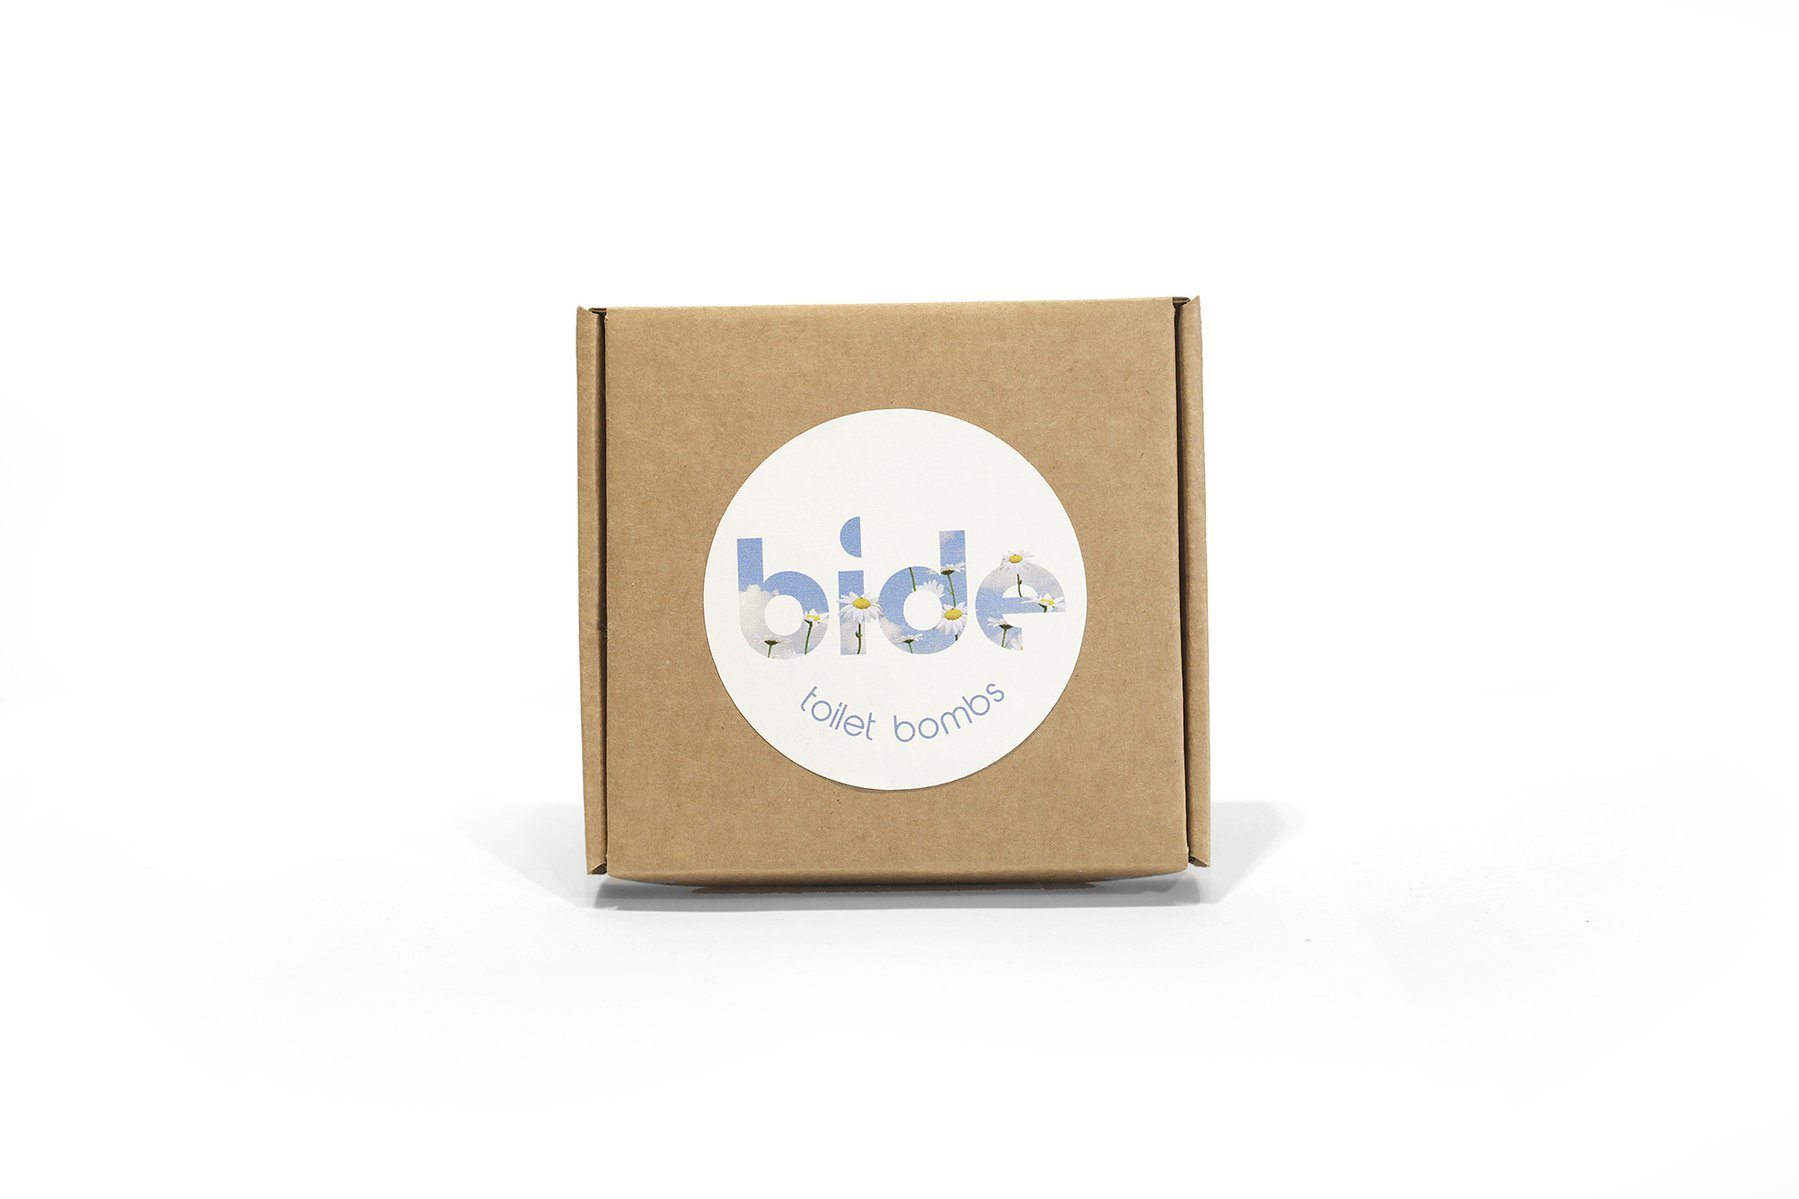 bide Eco-Friendly Toilet Cleaning Bombs